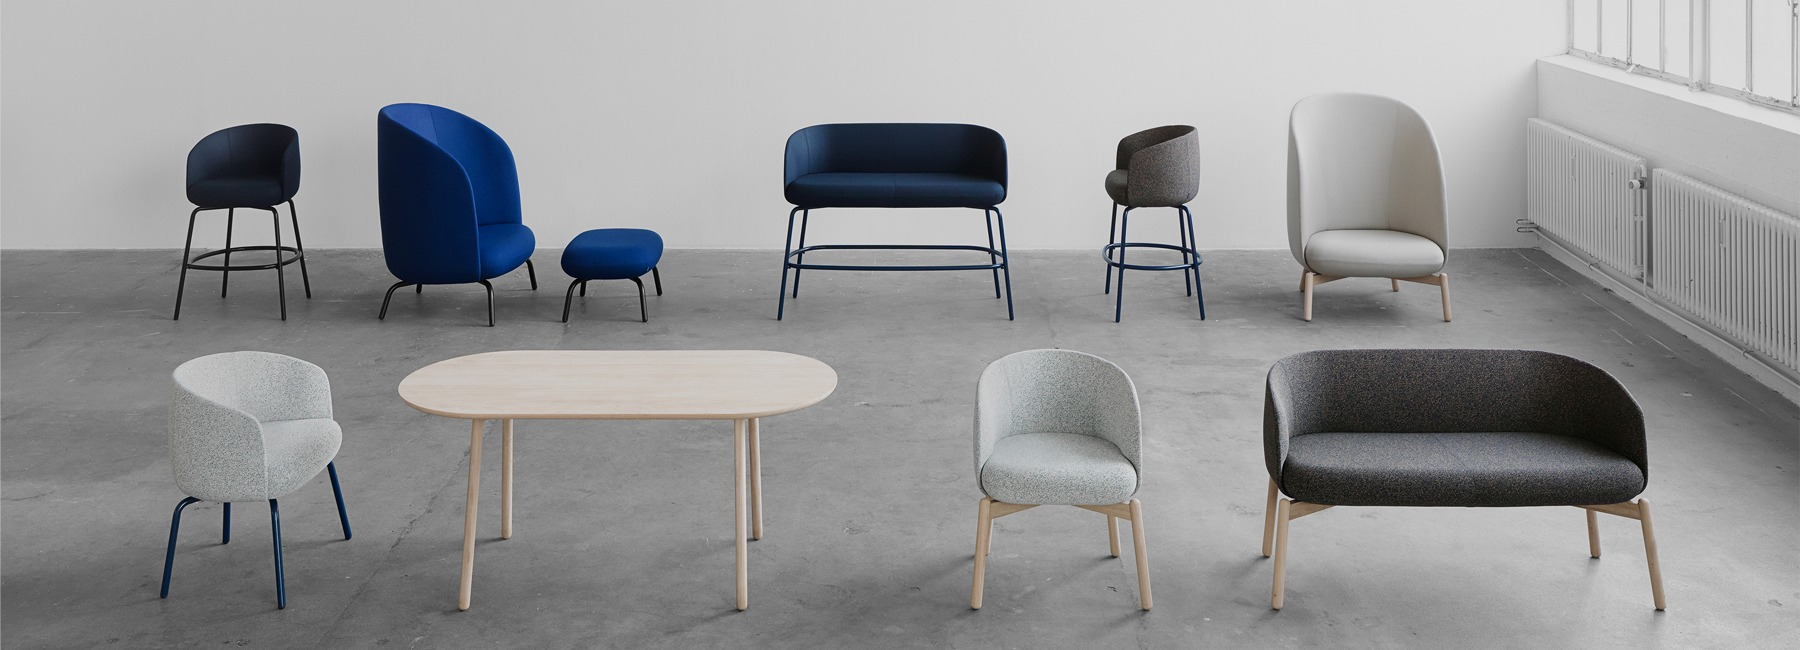 form-us-with-love-nest-collectio1